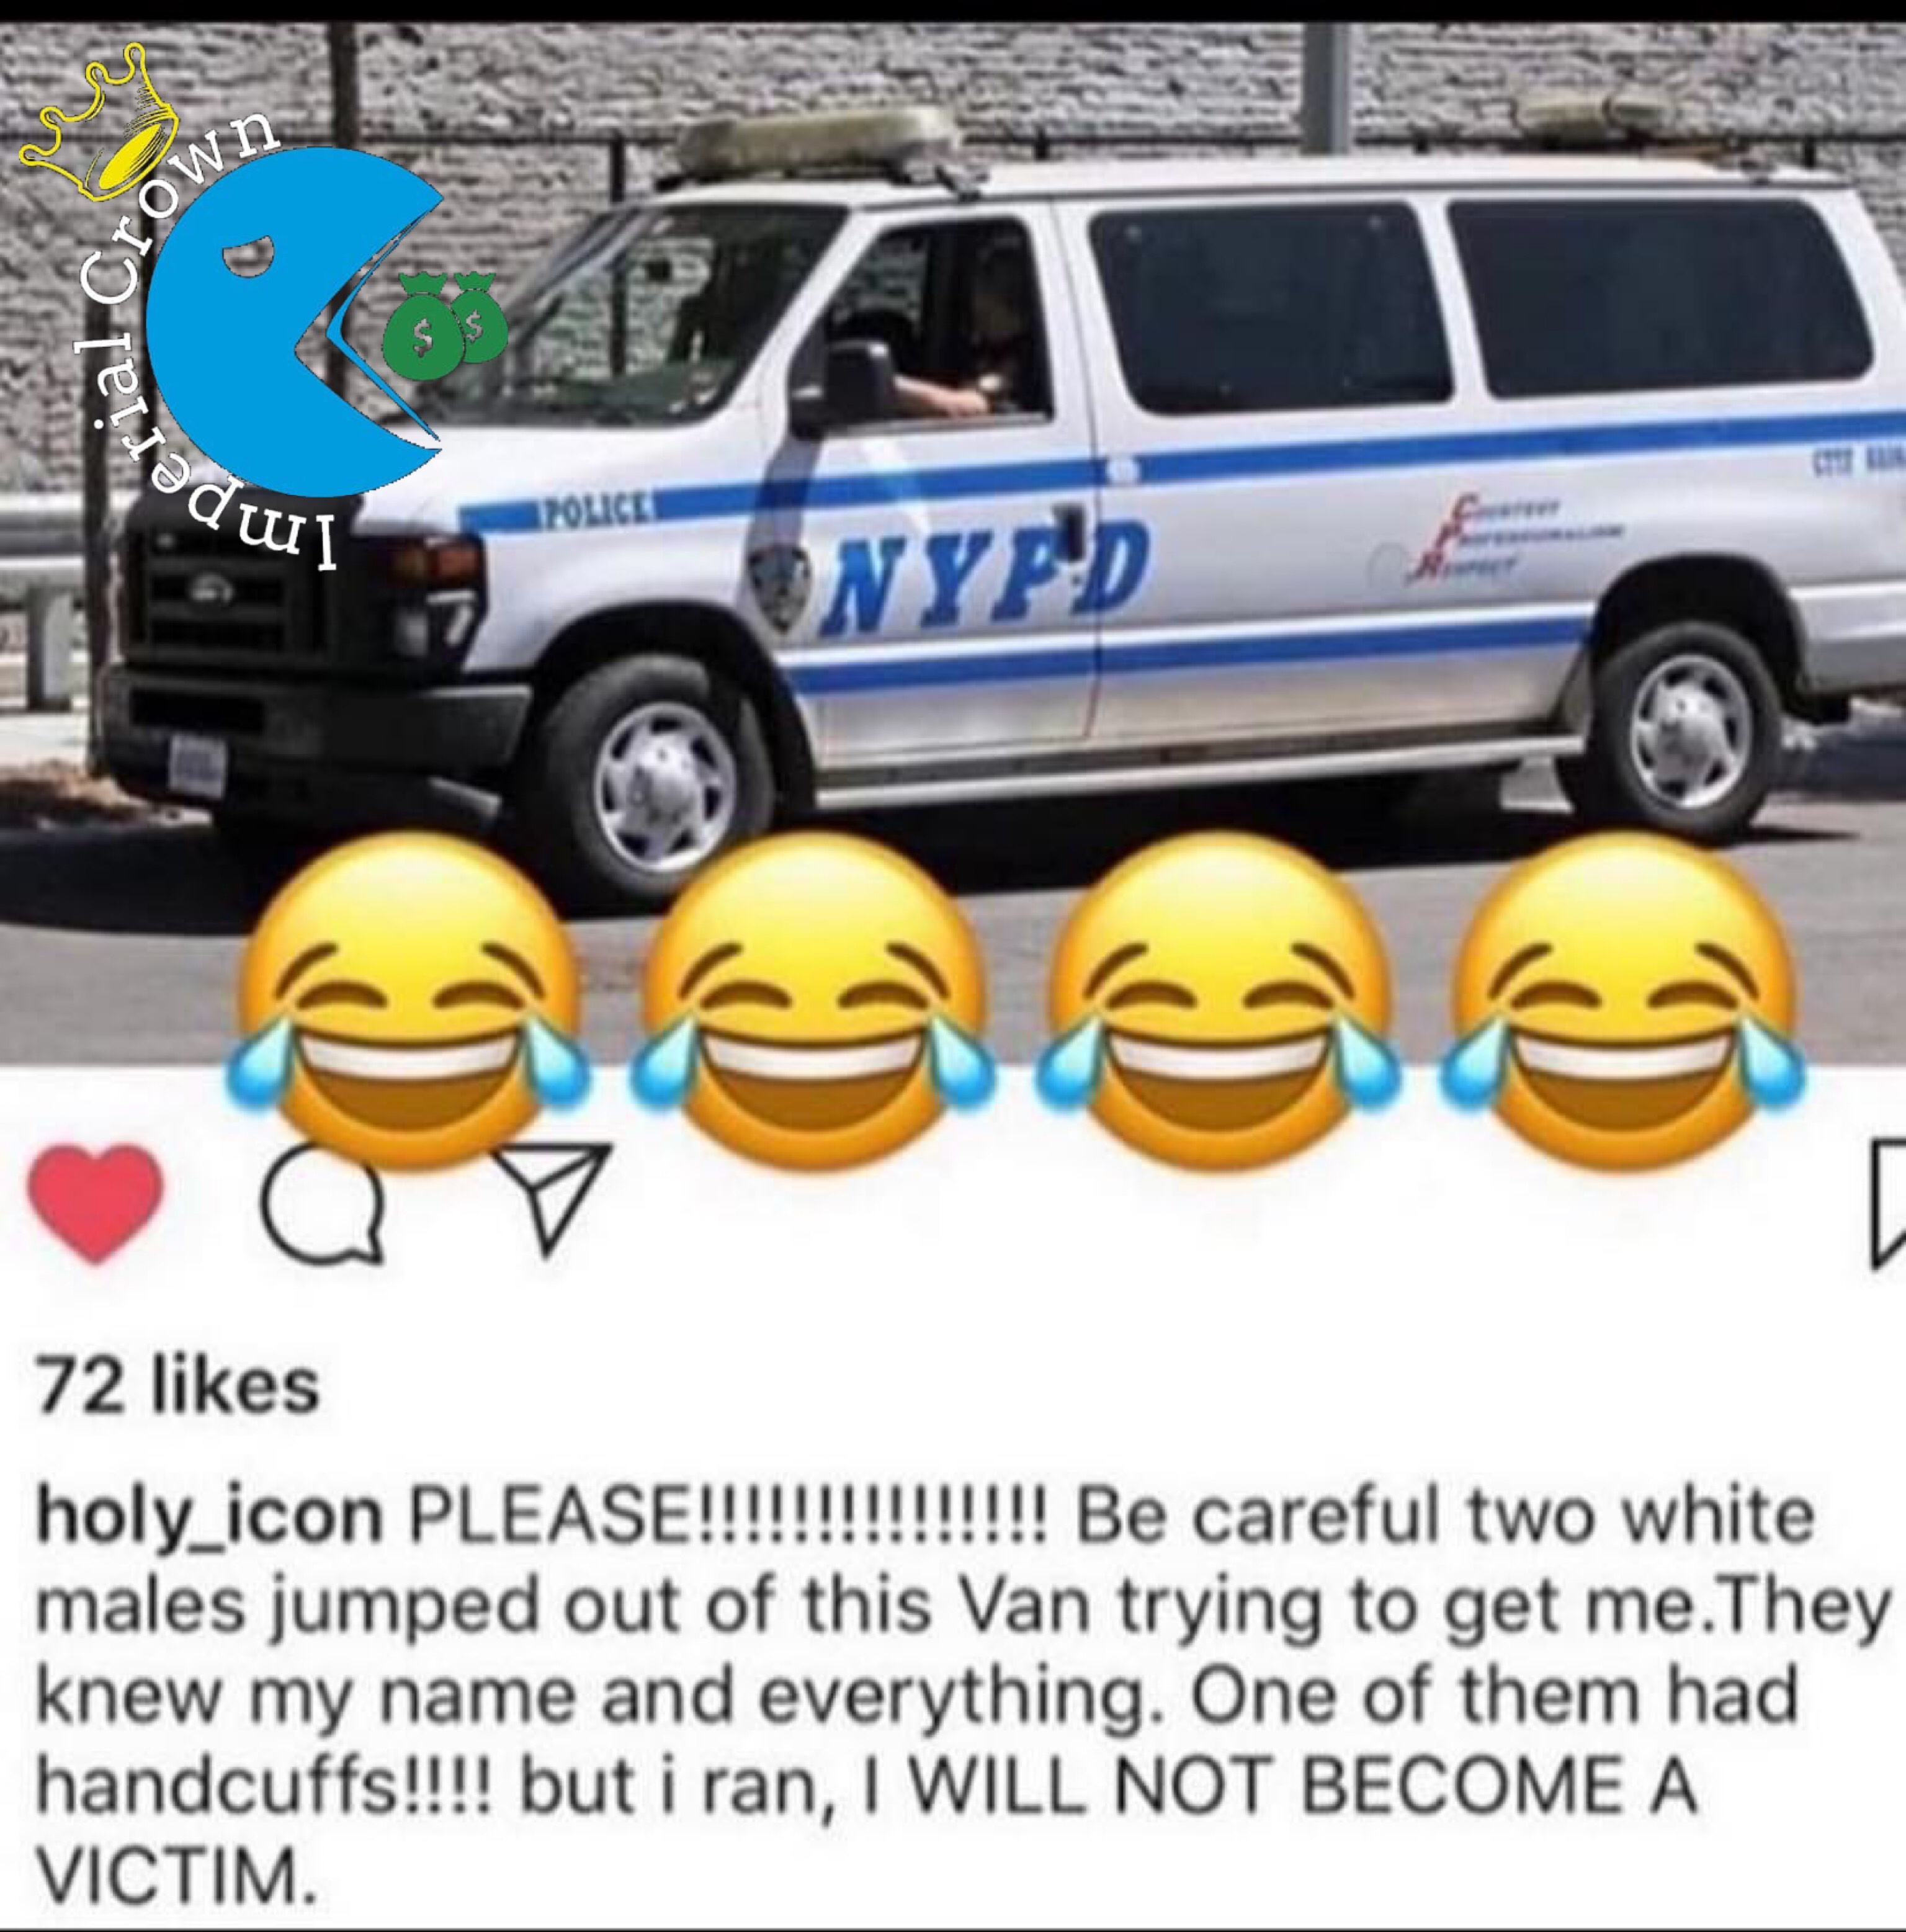 Please be careful two white males jumped out of this Van trying to get me